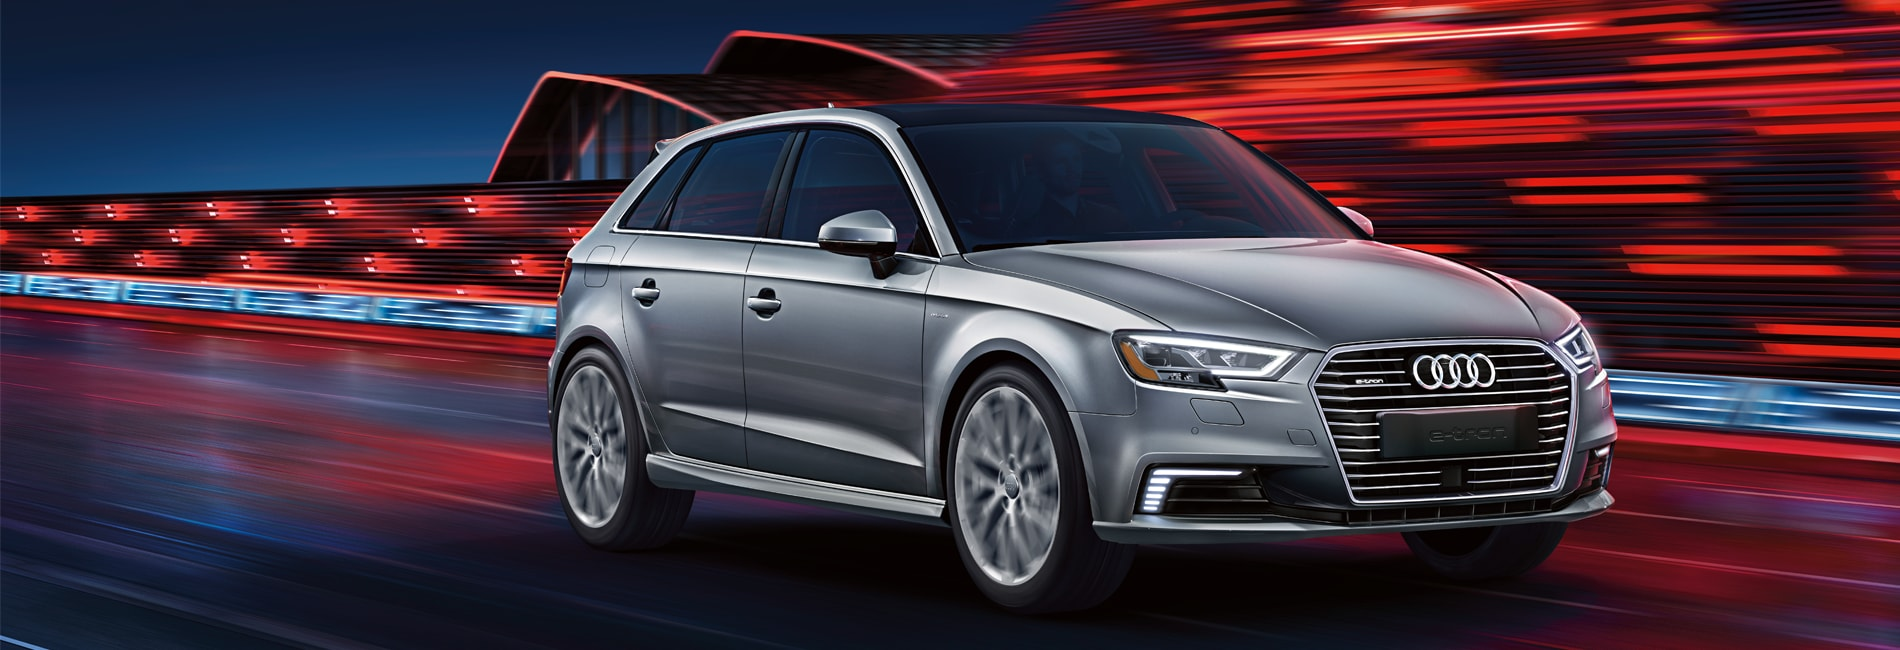 Audi A3 e-tron Exterior Vehicle Features